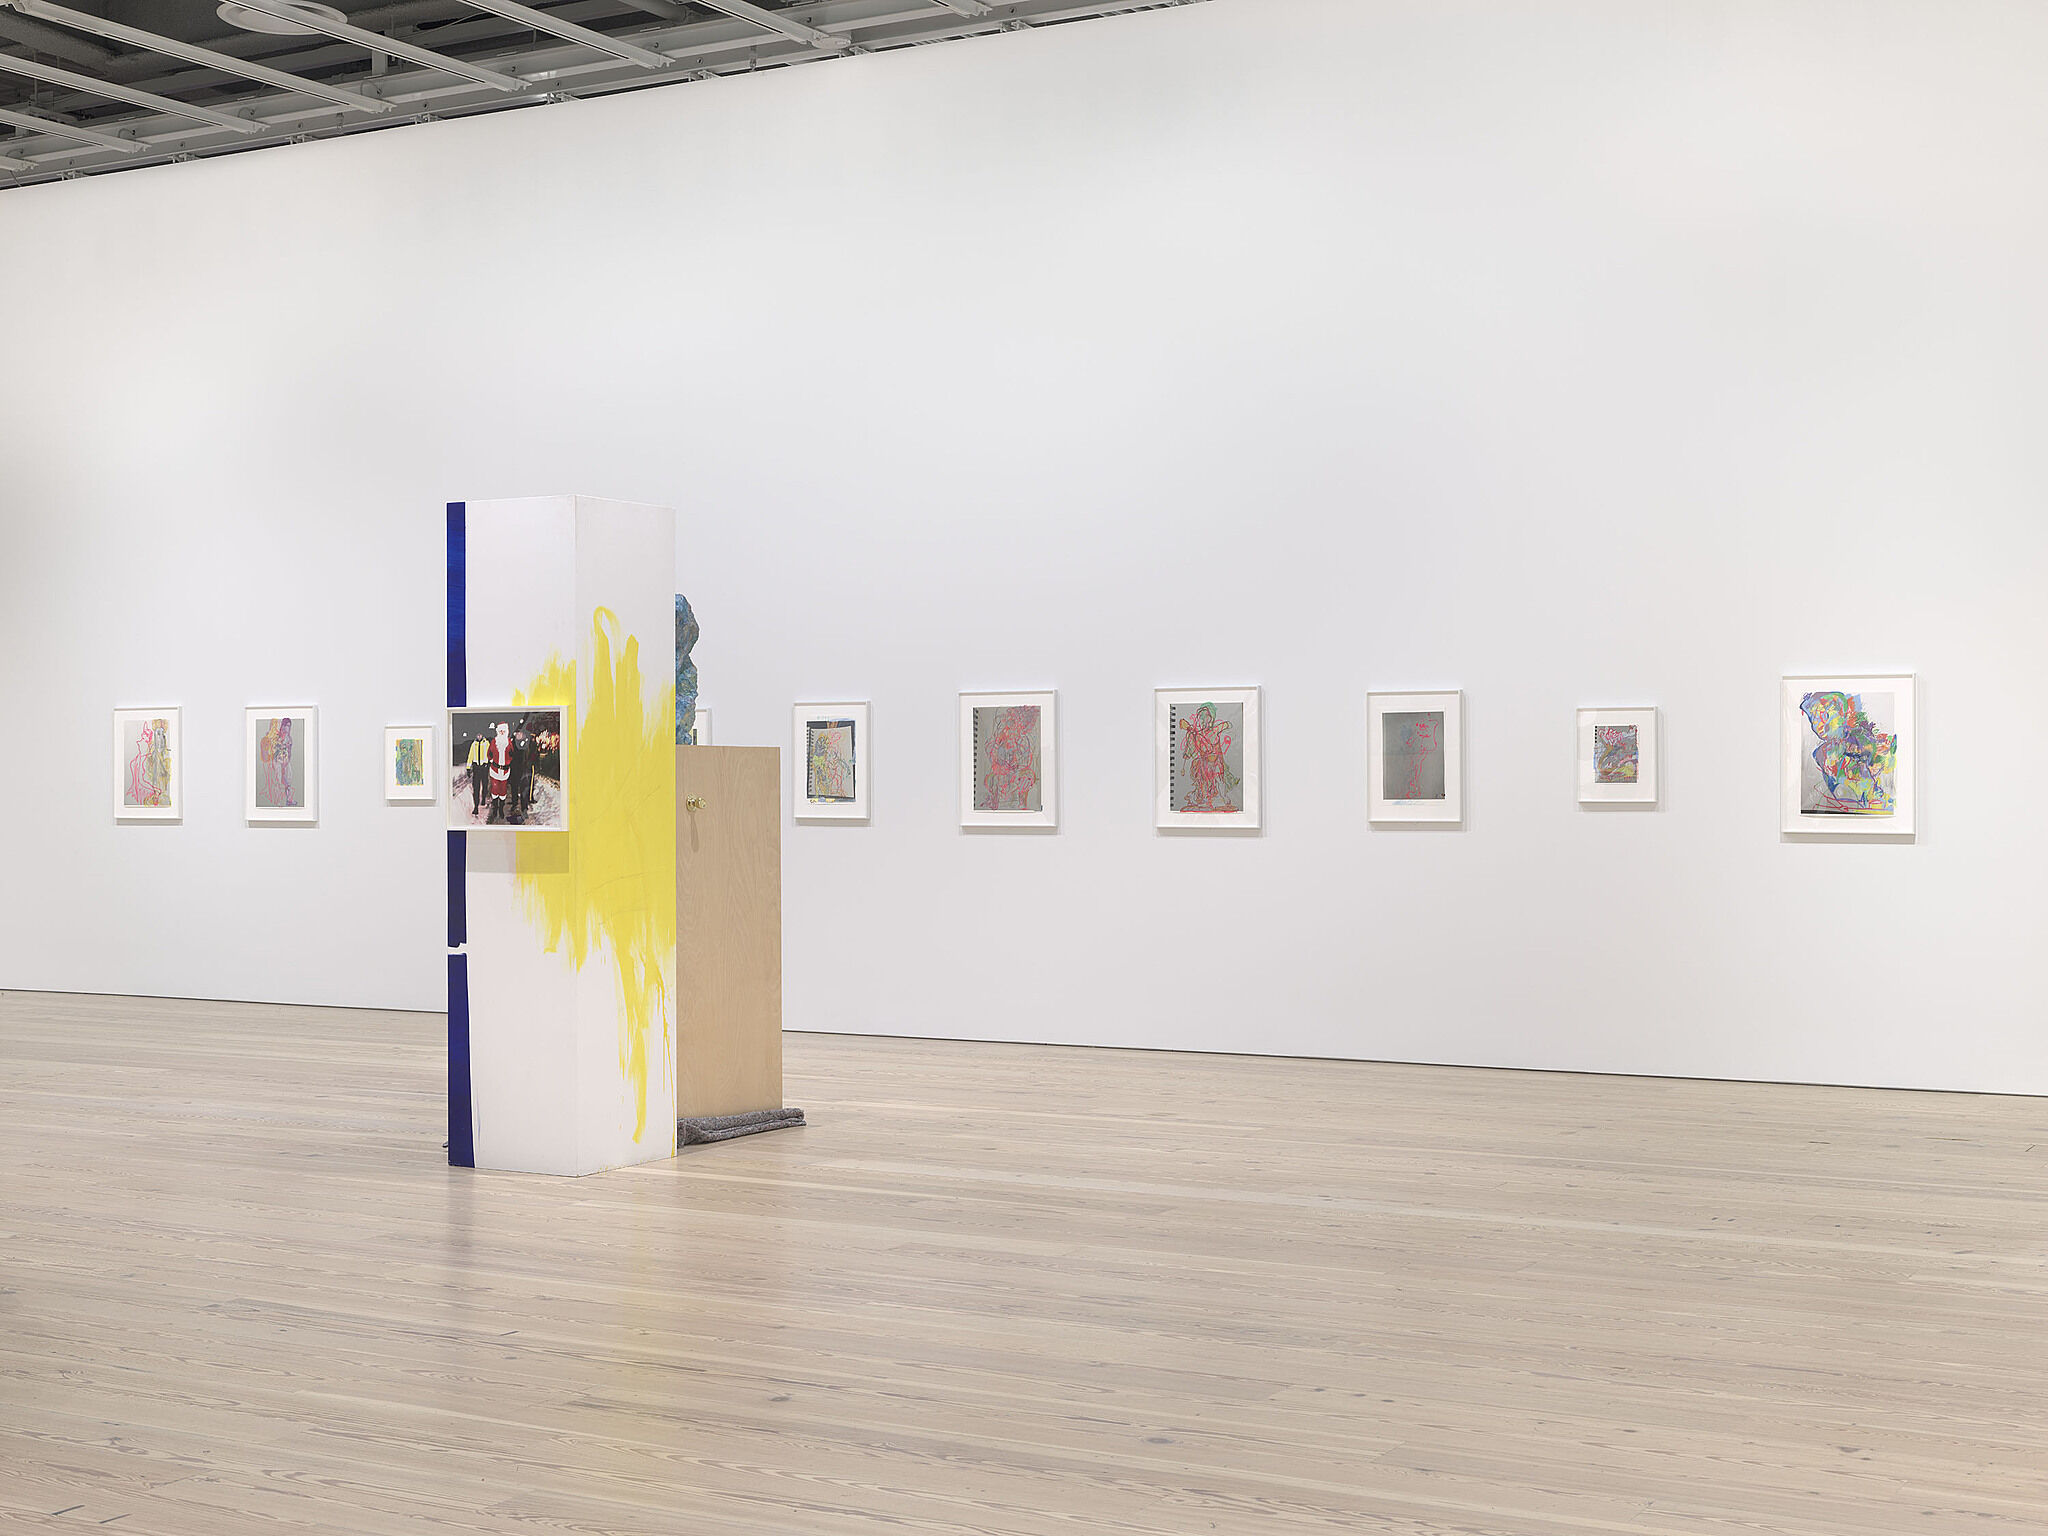 An image of the Whitney galleries with various artworks on the wall and a single sculpture.